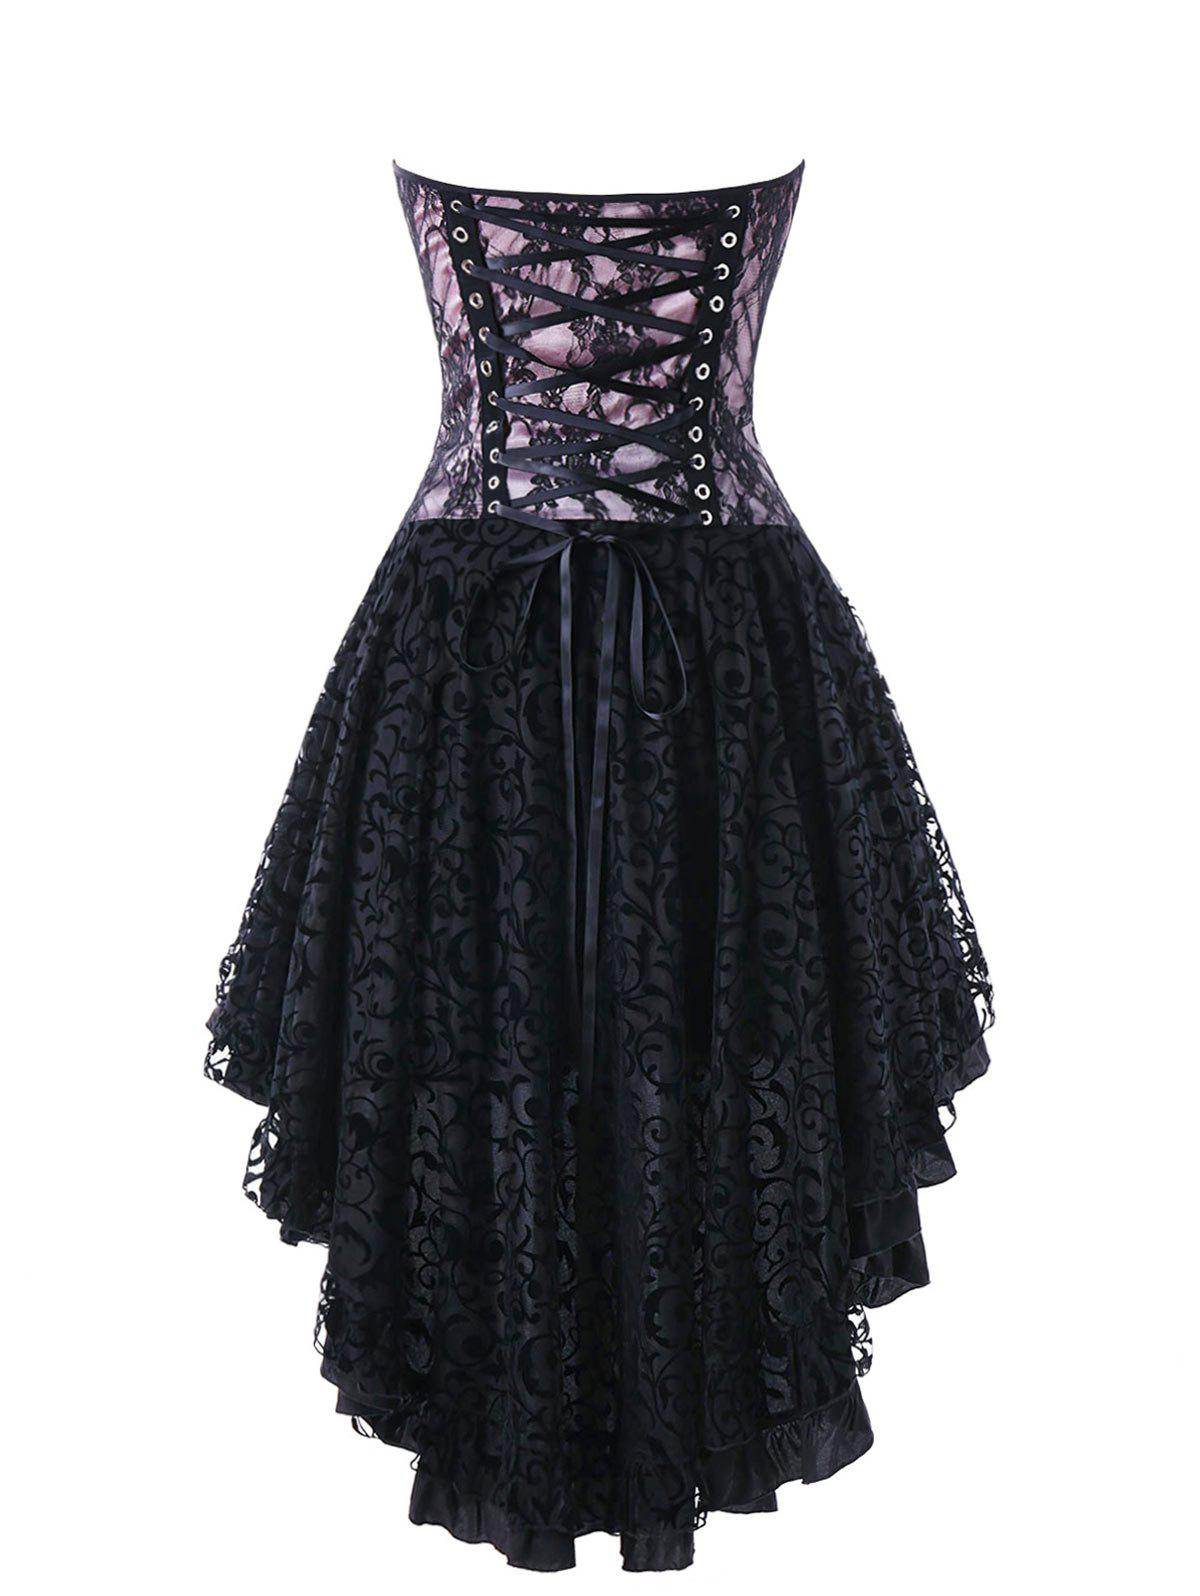 Lace Up Strapless High Low Hem Corset Dress - BLACK L